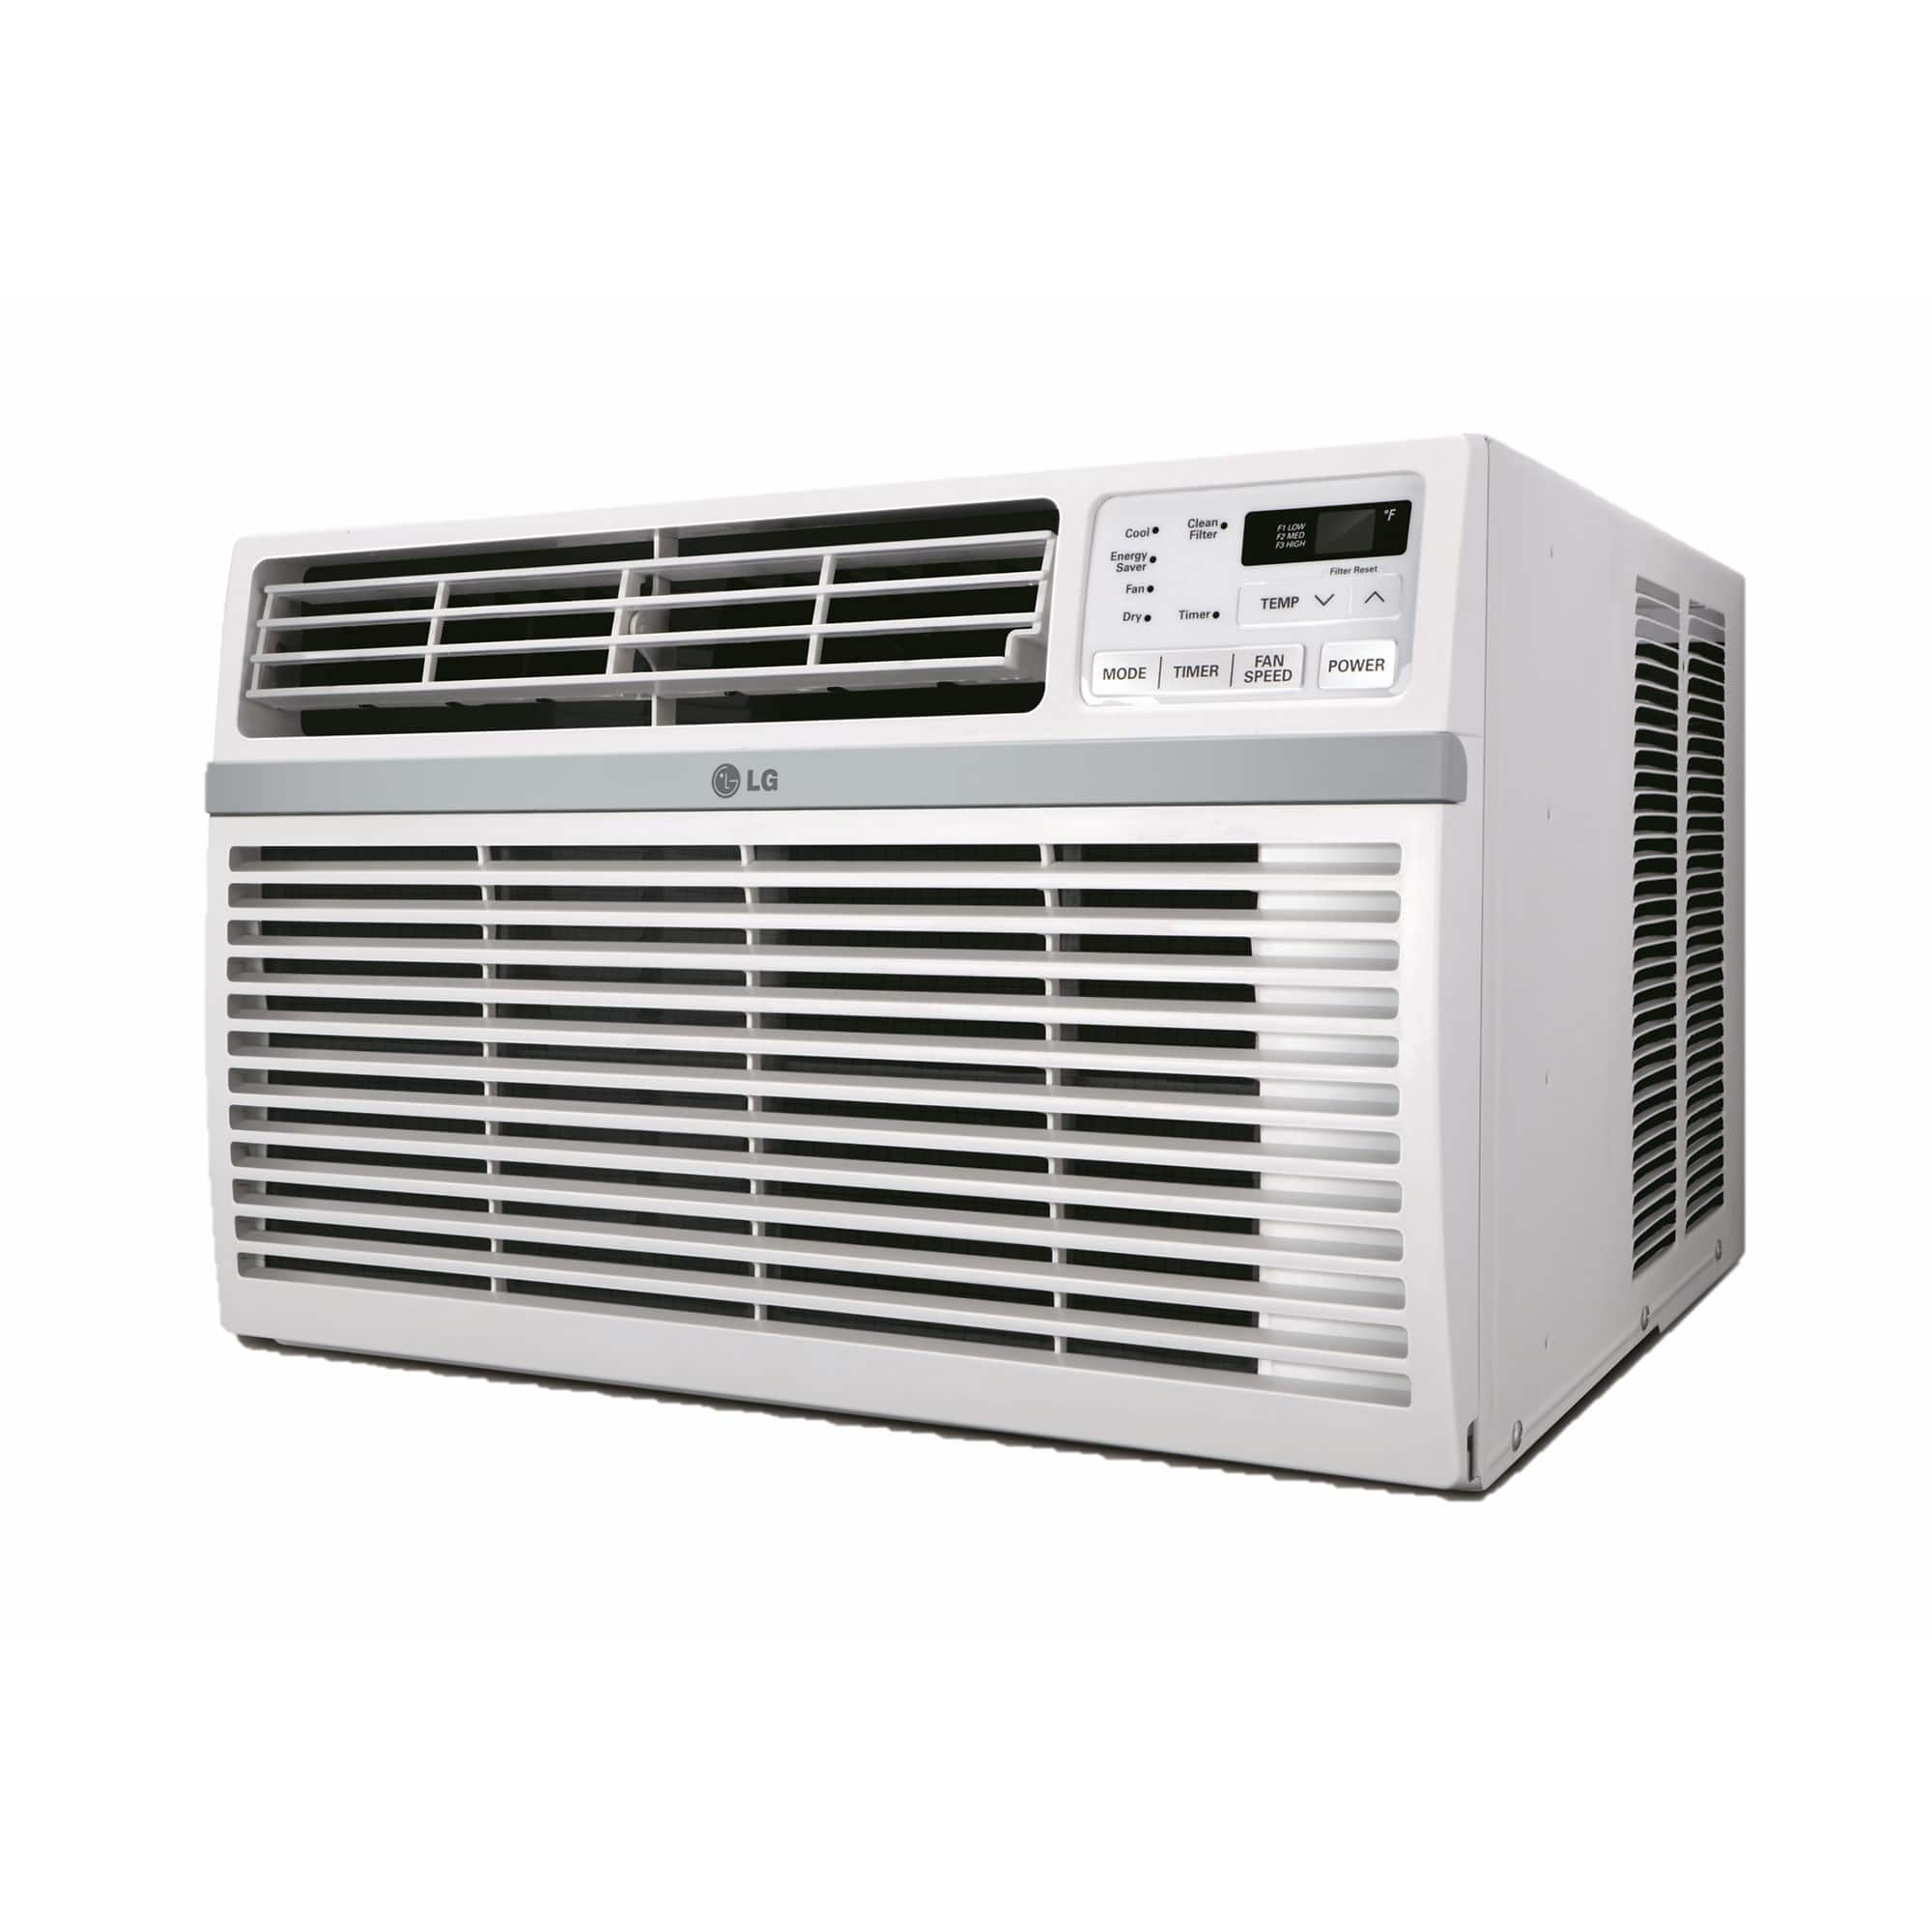 LG 8000 BTU Window Air Conditioner $180 in store ($200 w/free ship), $275/$300 for 12K BTU, membership not req'd